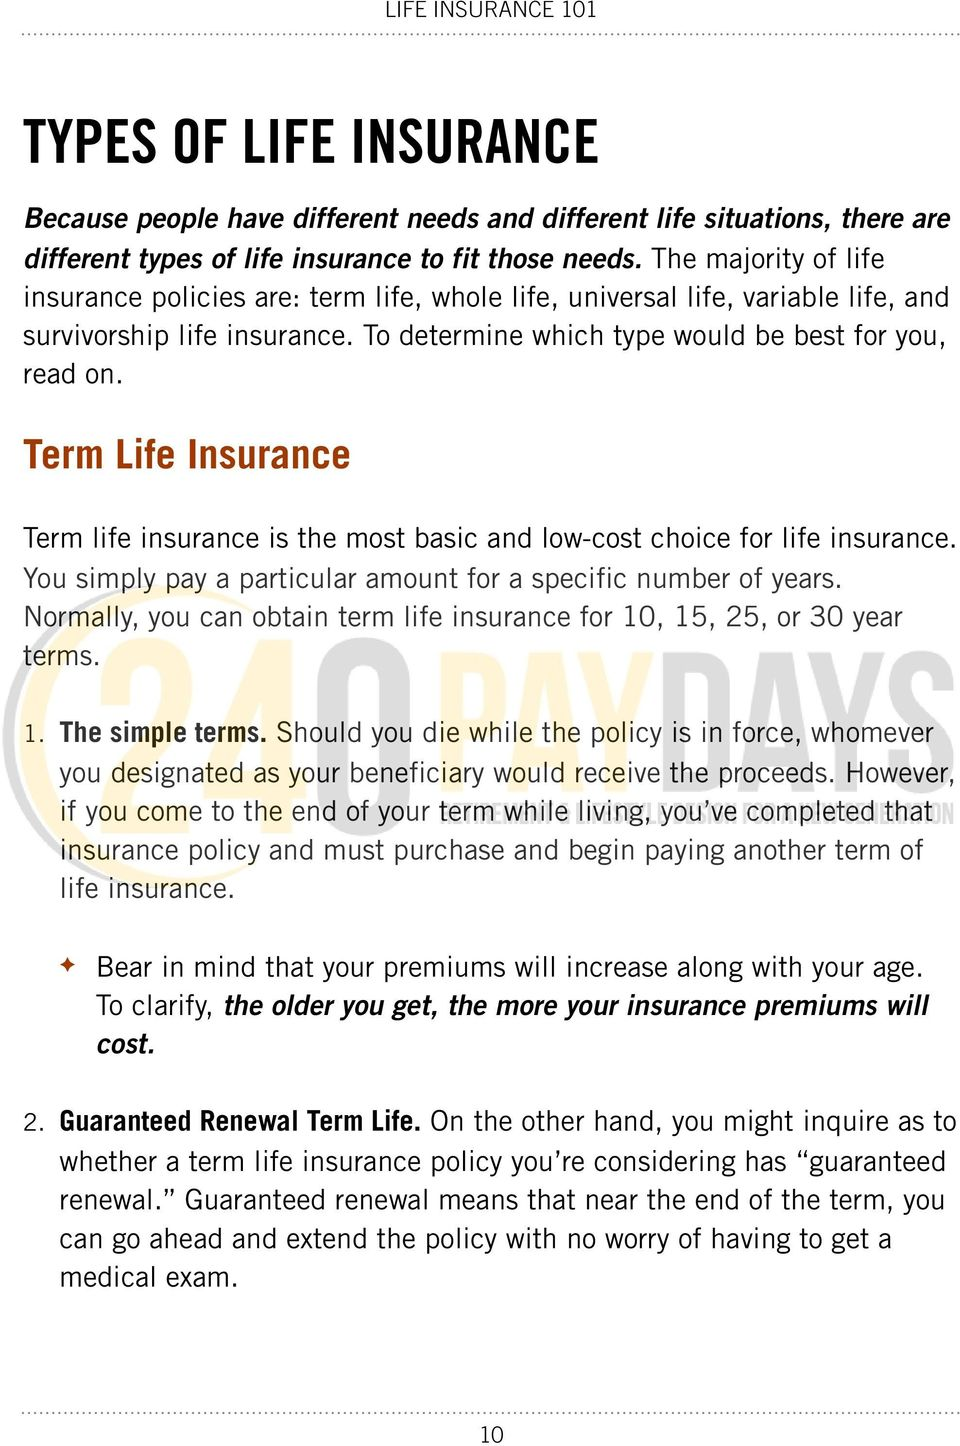 Term Life Insurance Term life insurance is the most basic and low-cost choice for life insurance. You simply pay a particular amount for a specific number of years.